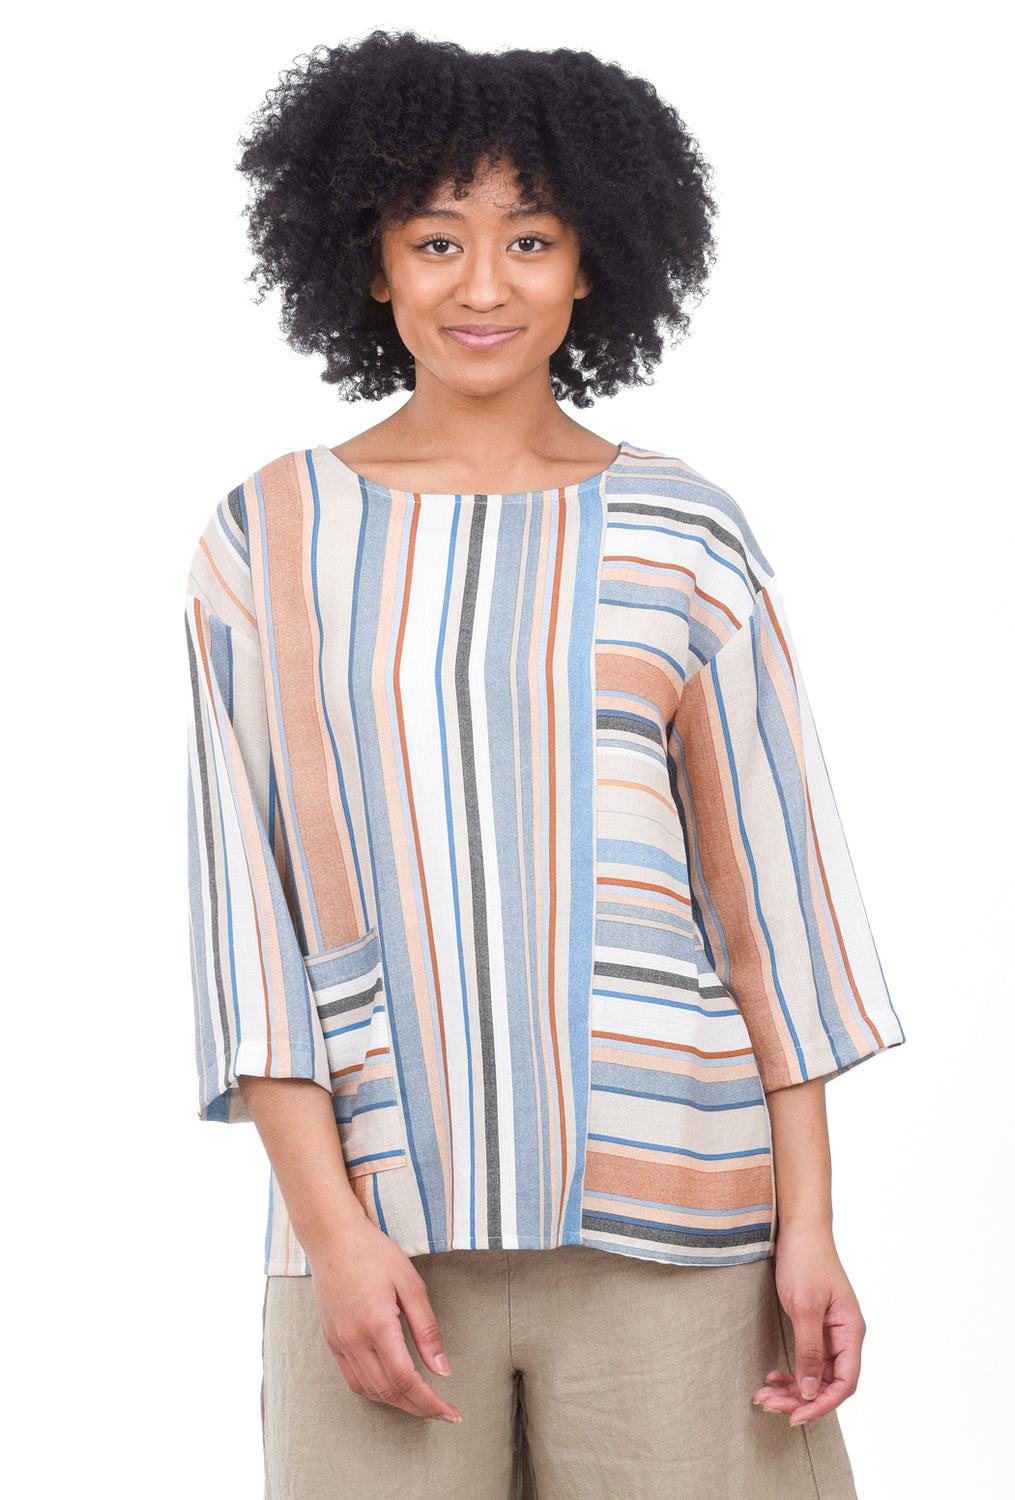 Christopher Calvin Breezy Multi-Stripe Blouse, Blue Multi